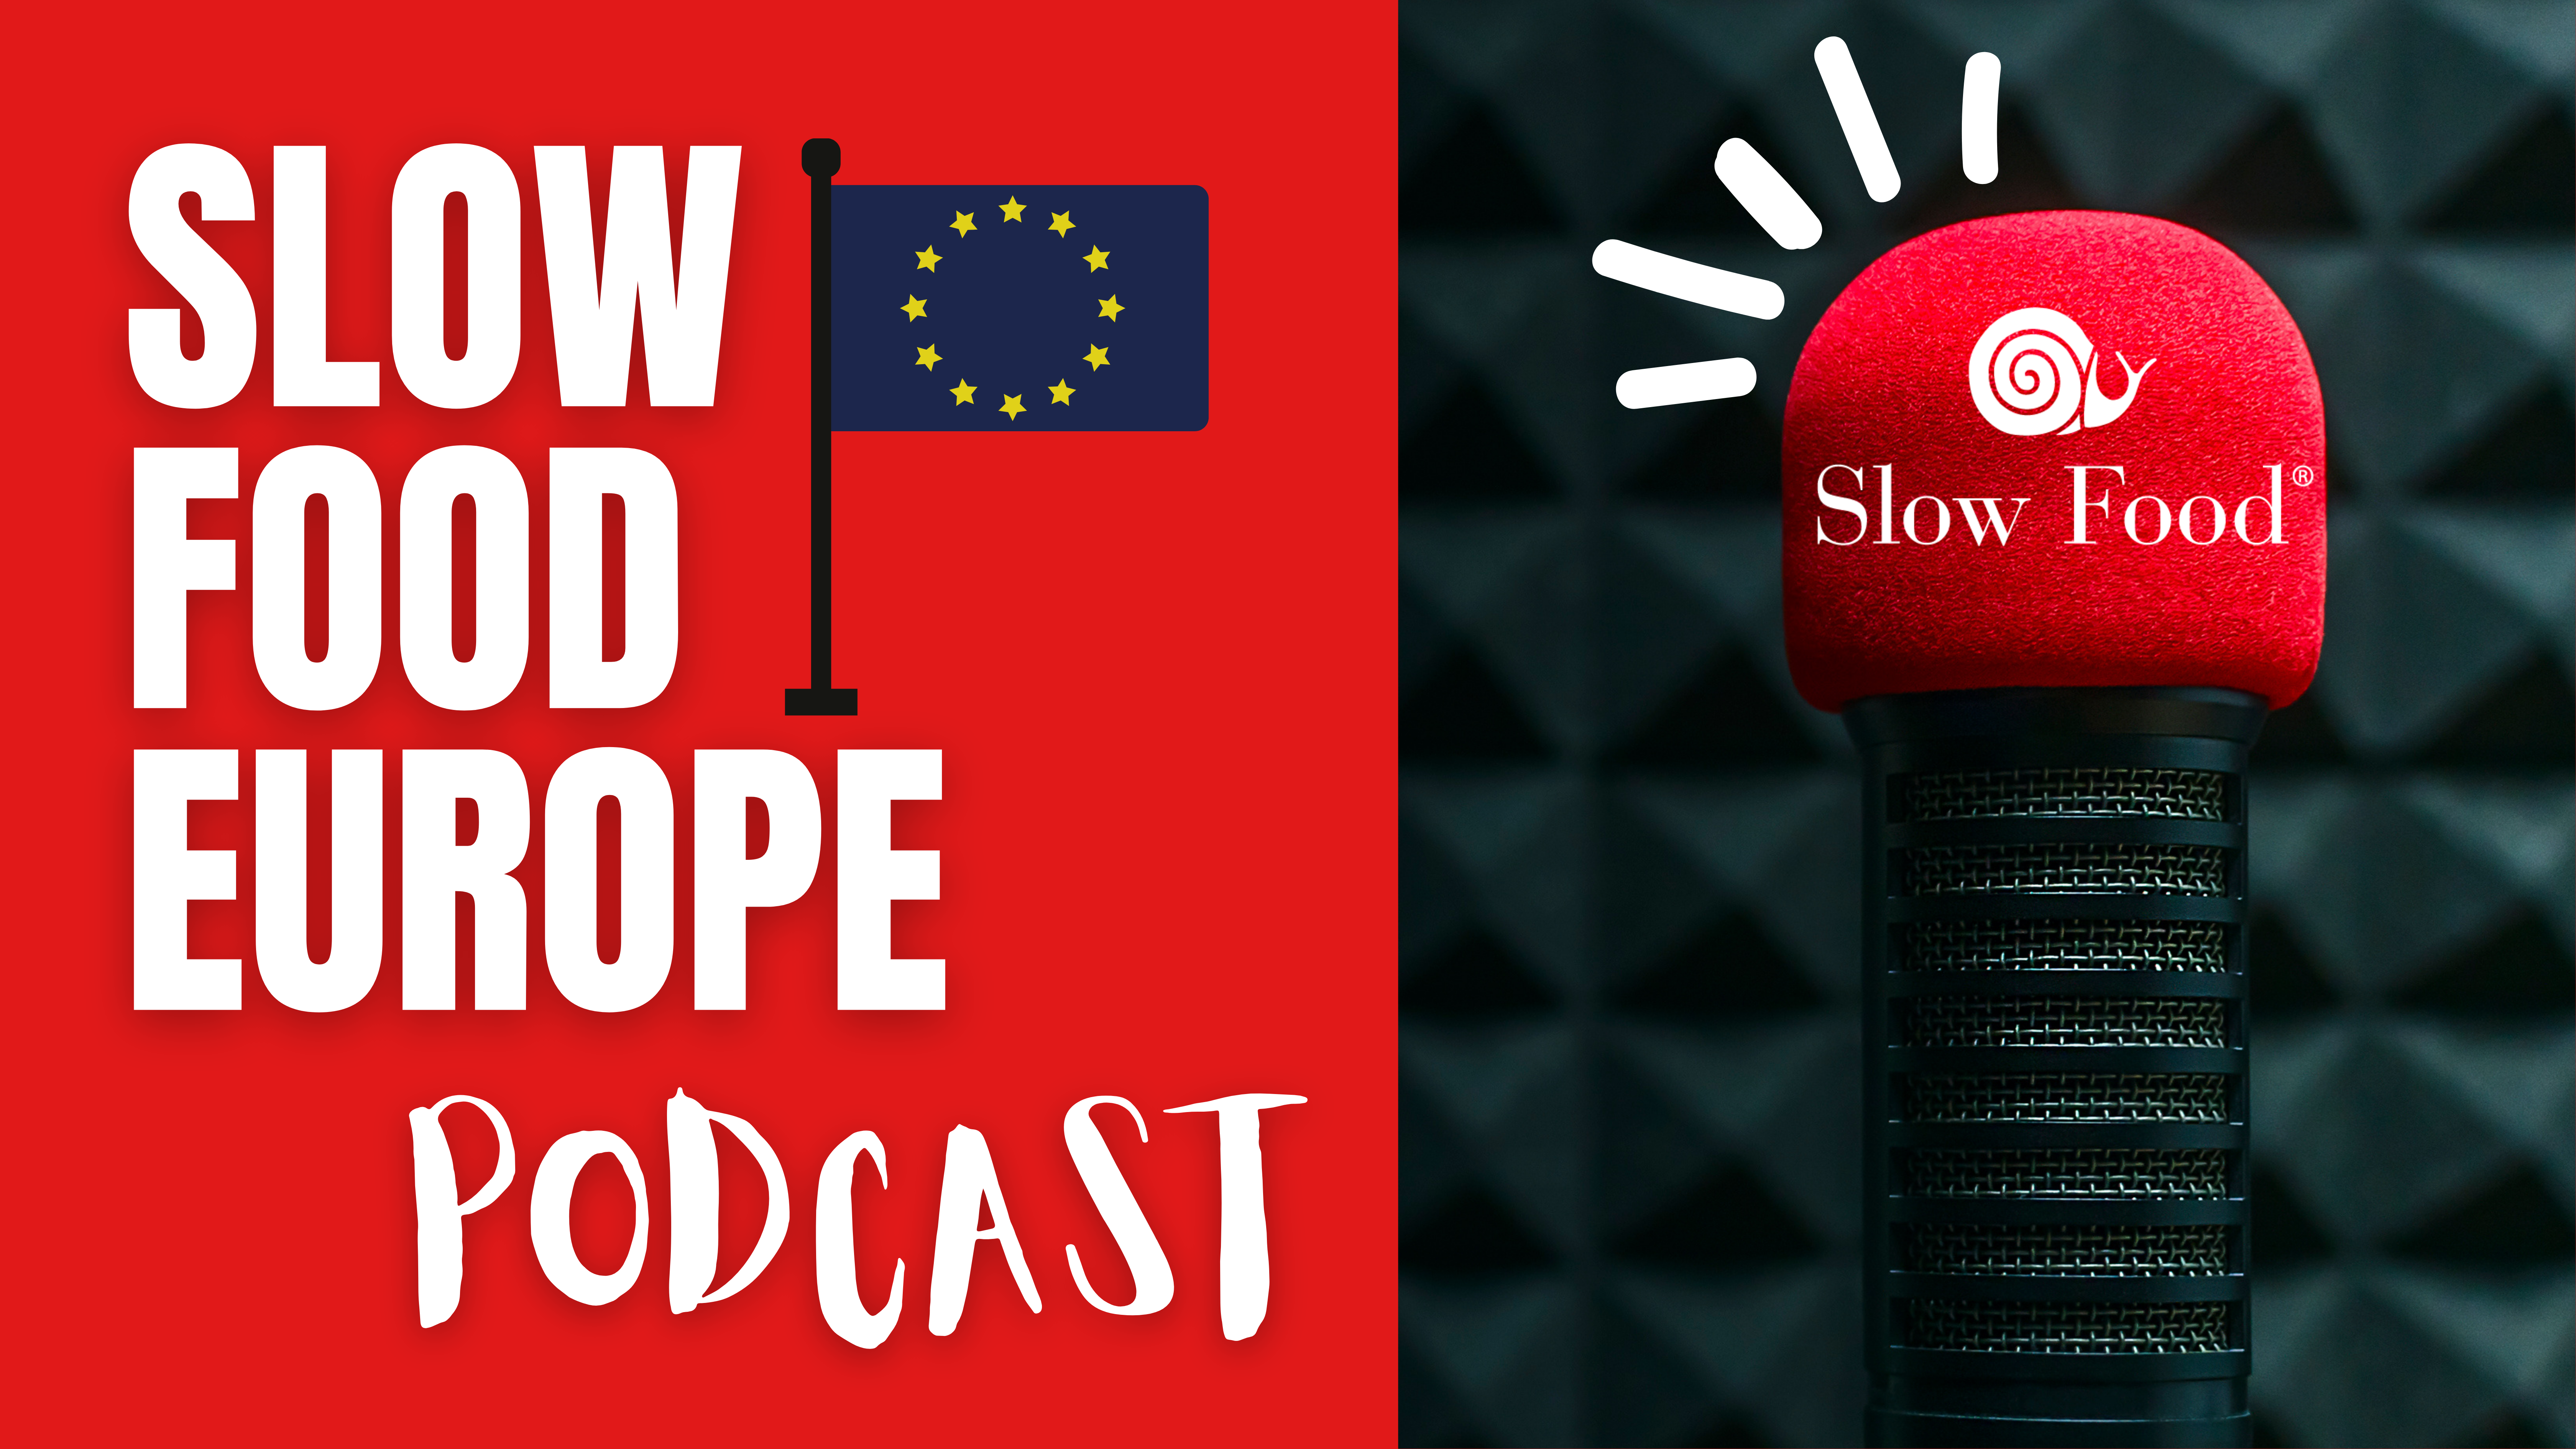 Slow Food Europe Podcast